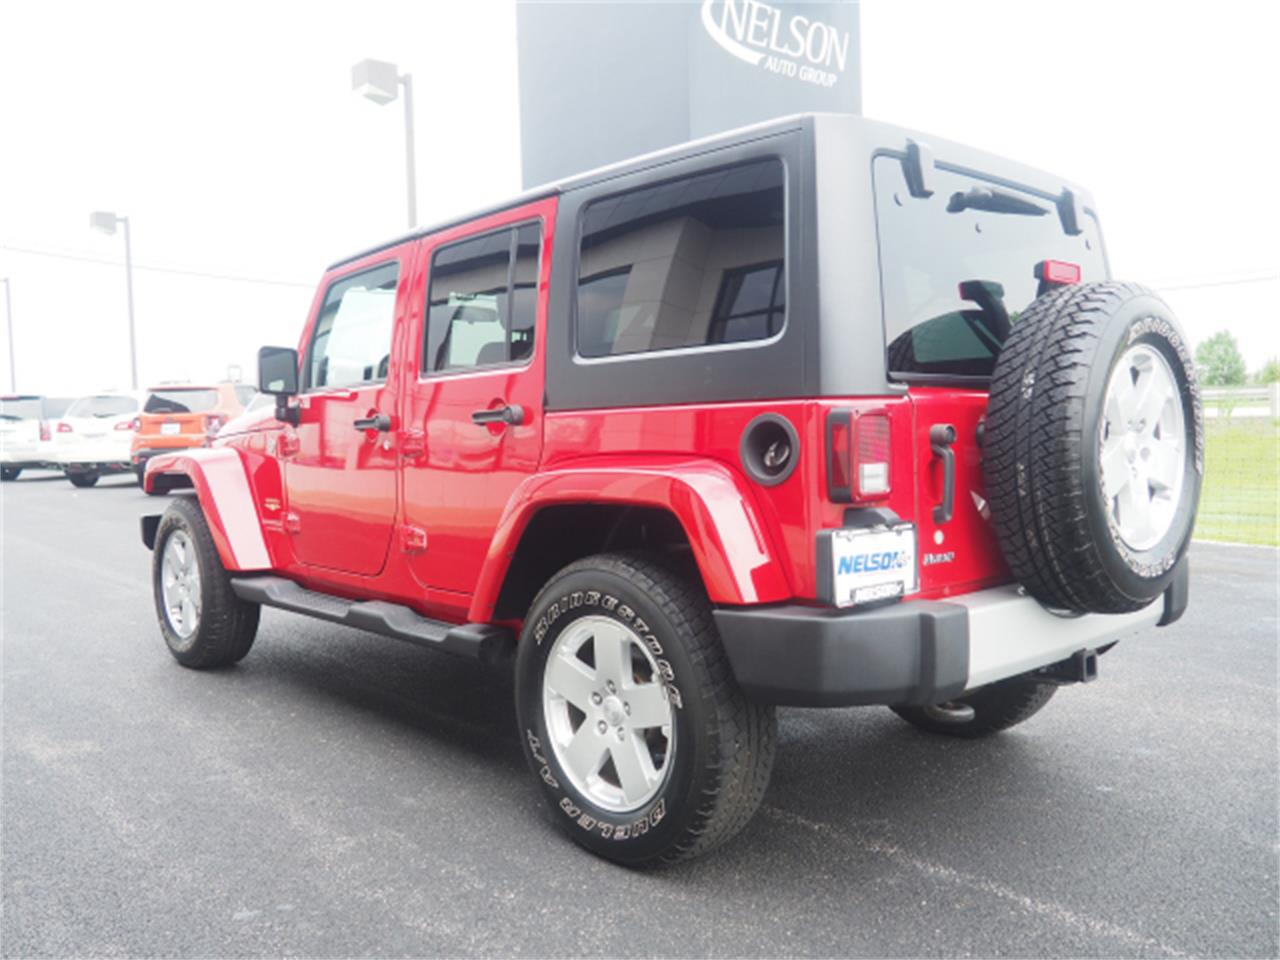 Large Picture of 2012 Wrangler - $23,999.00 Offered by Nelson Automotive, Ltd. - PPKU